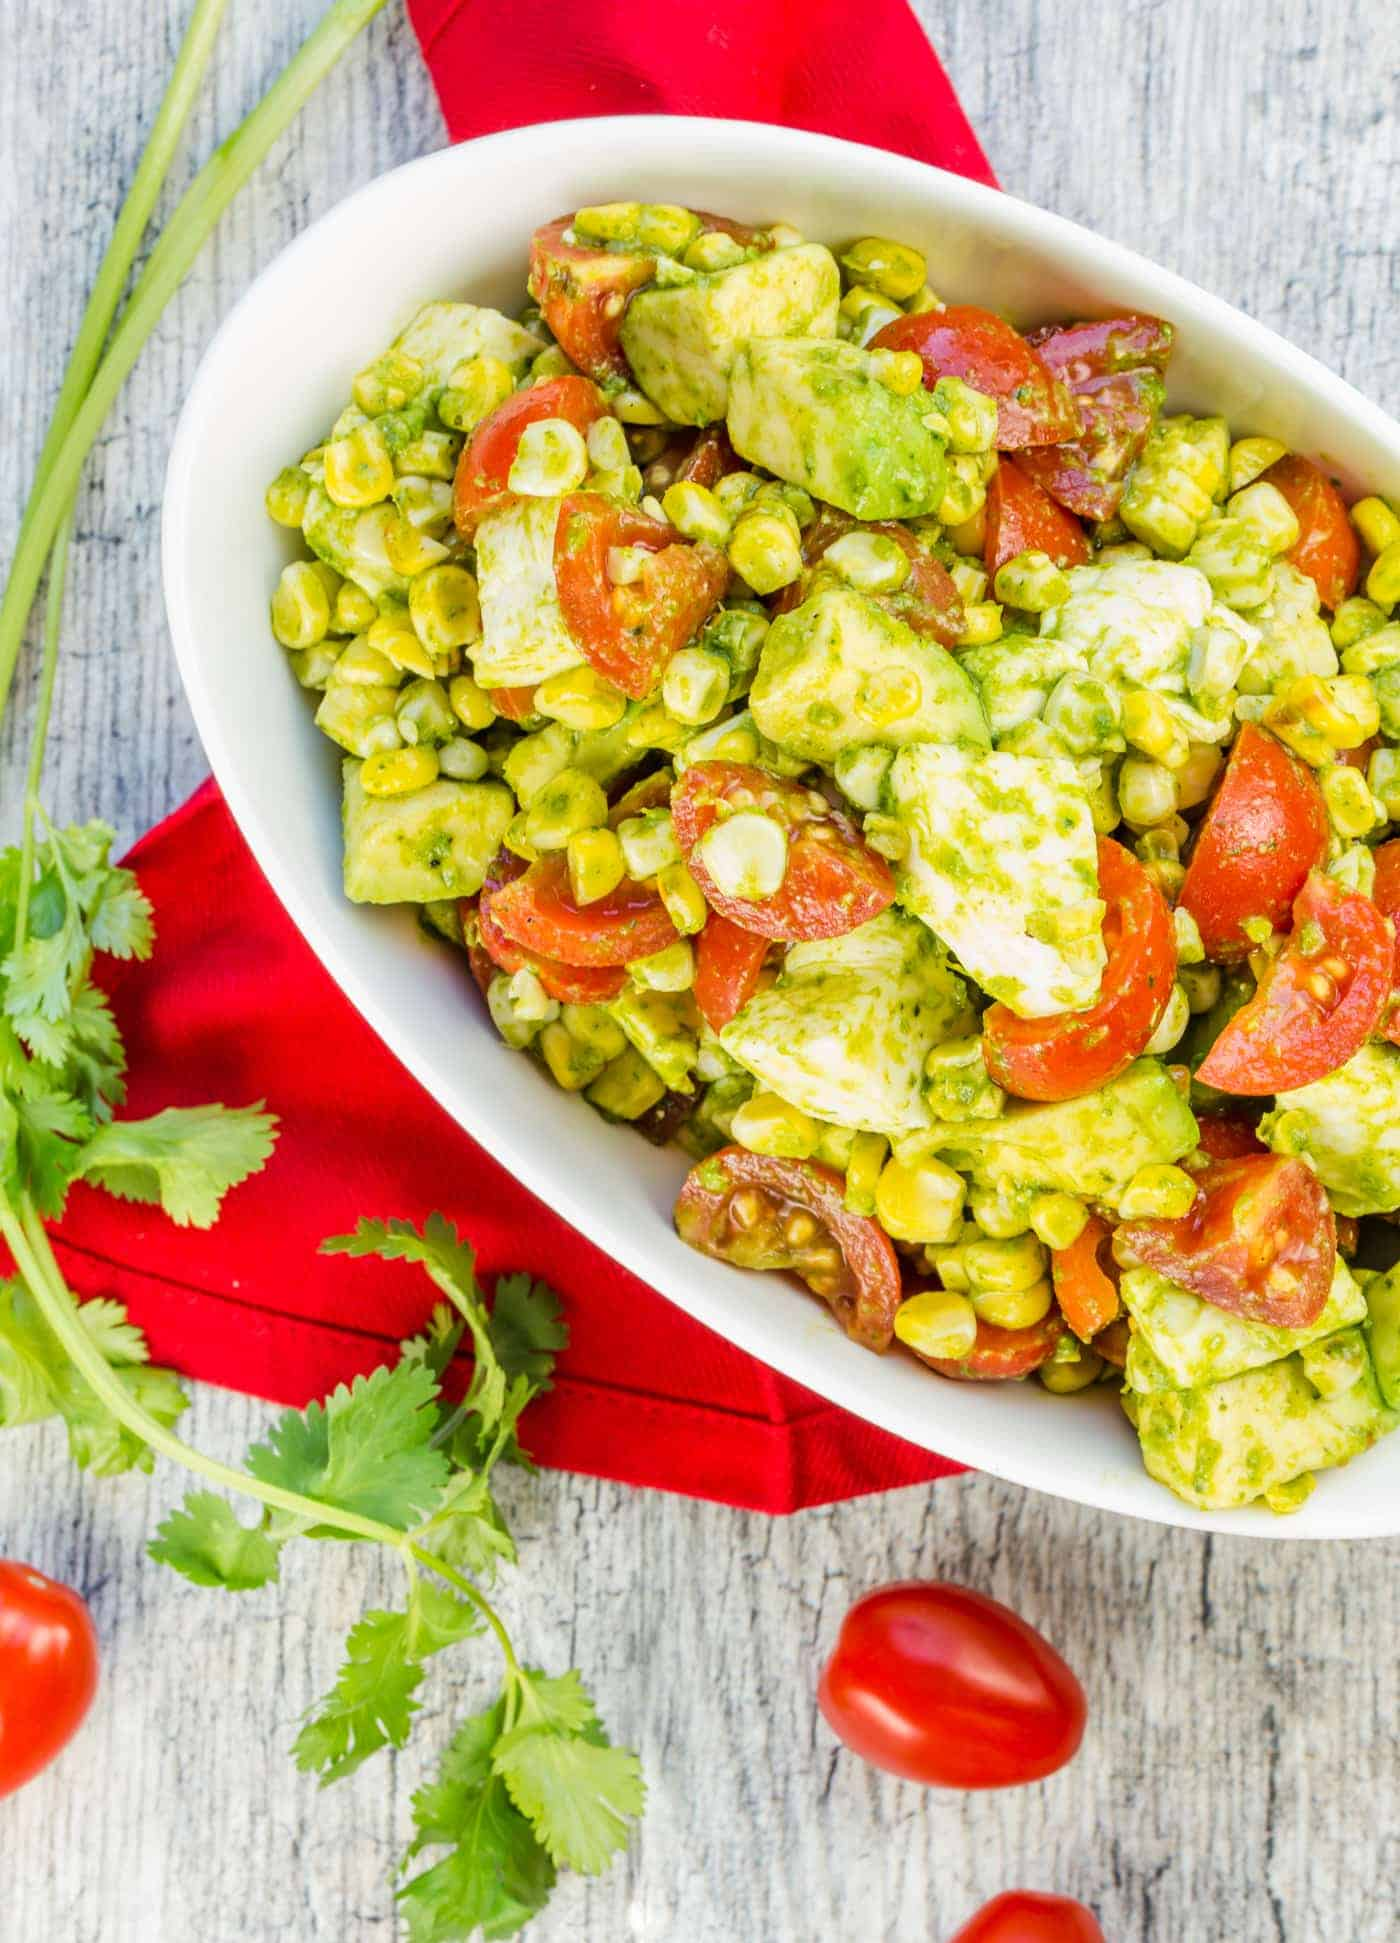 This Tomato, Mozzarella and Grilled Corn Salad recipe with creamy avocado and a tangy cilantro dressing is a summer side dish favorite for any BBQ!